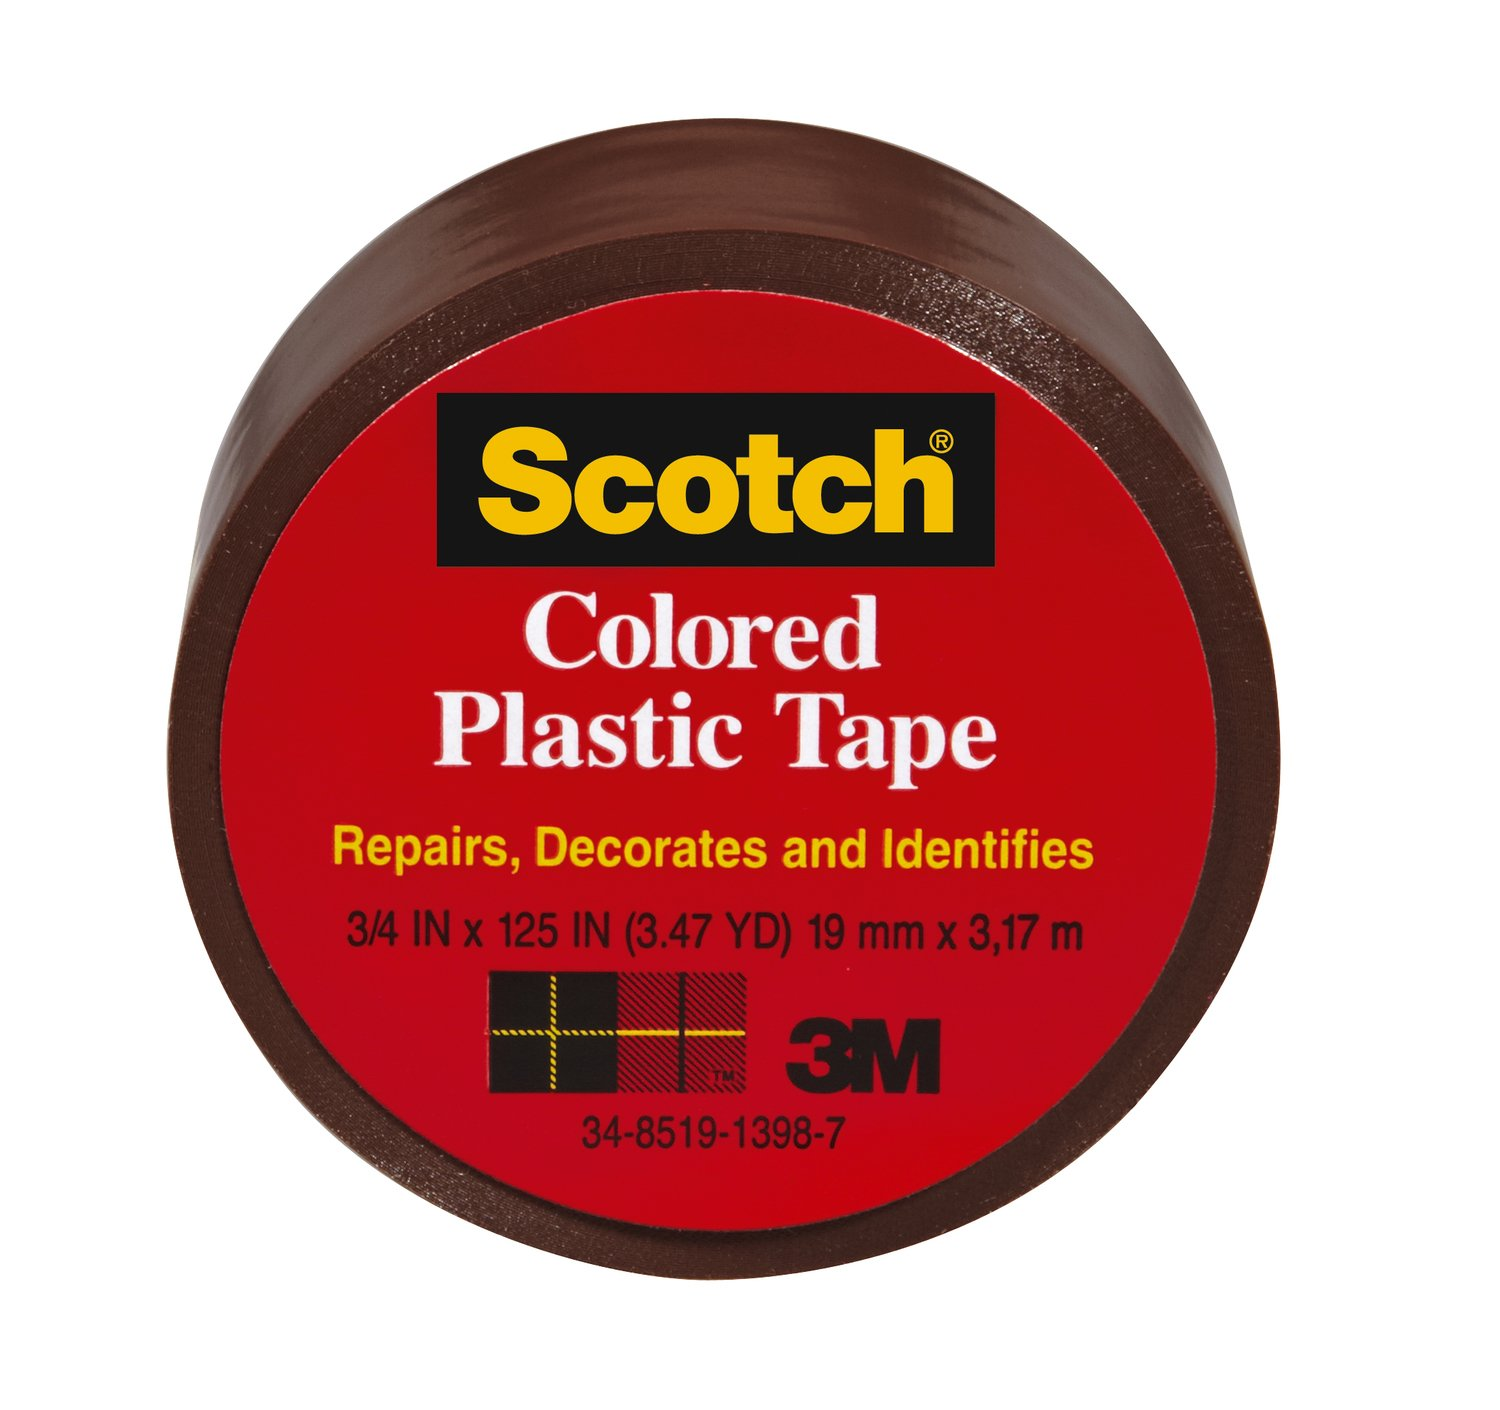 Scotch 191BN 6 Colored Plastic Tape 1.5 Inch x 125 Inch Brown